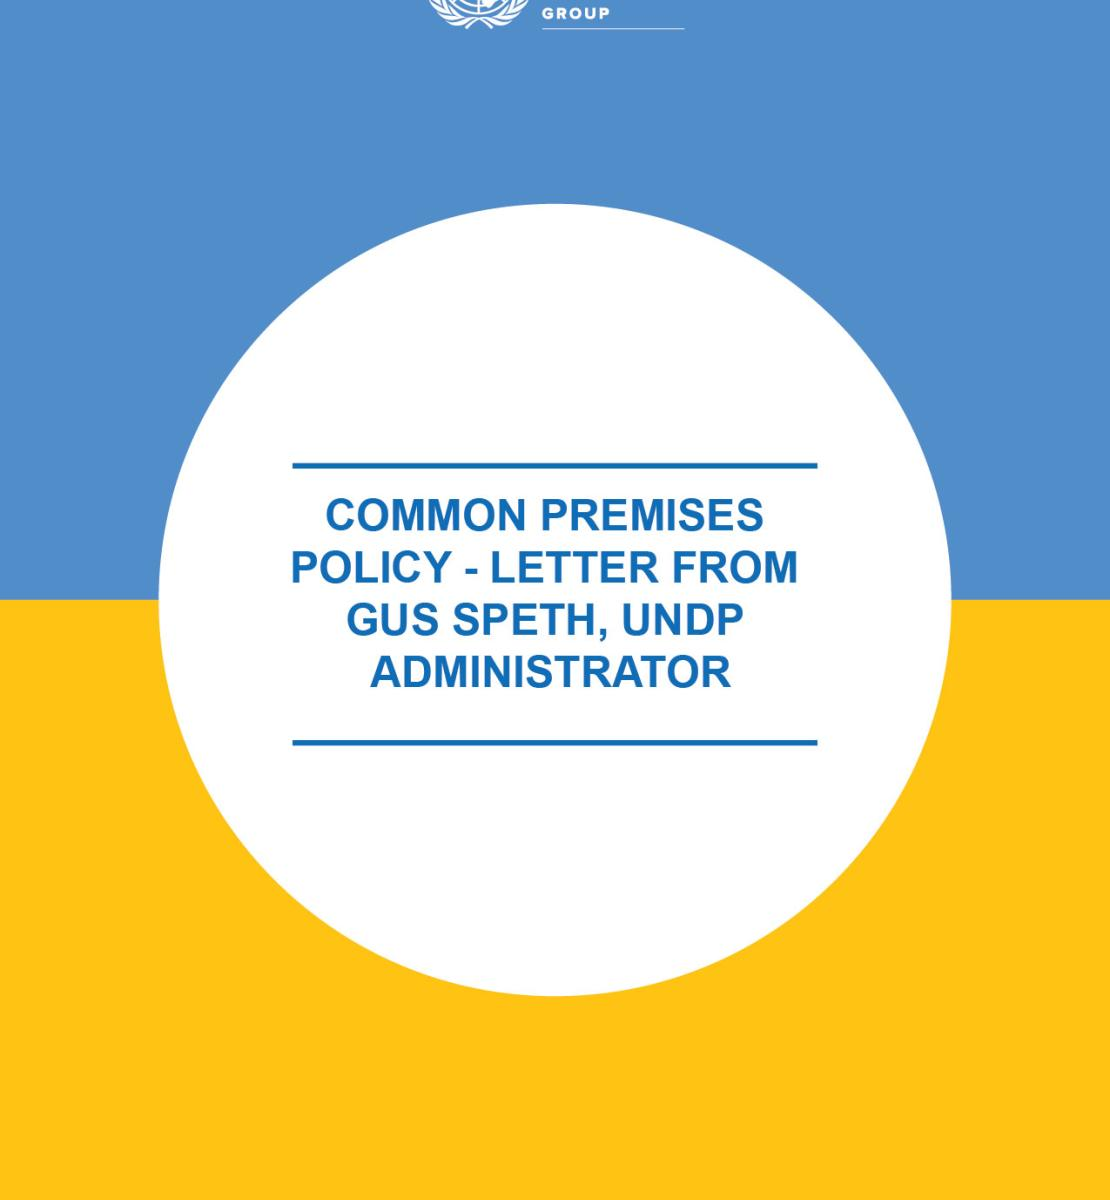 Common Premises Policy - Letter from Gus Speth, Administrator of the United Nations Development Programme